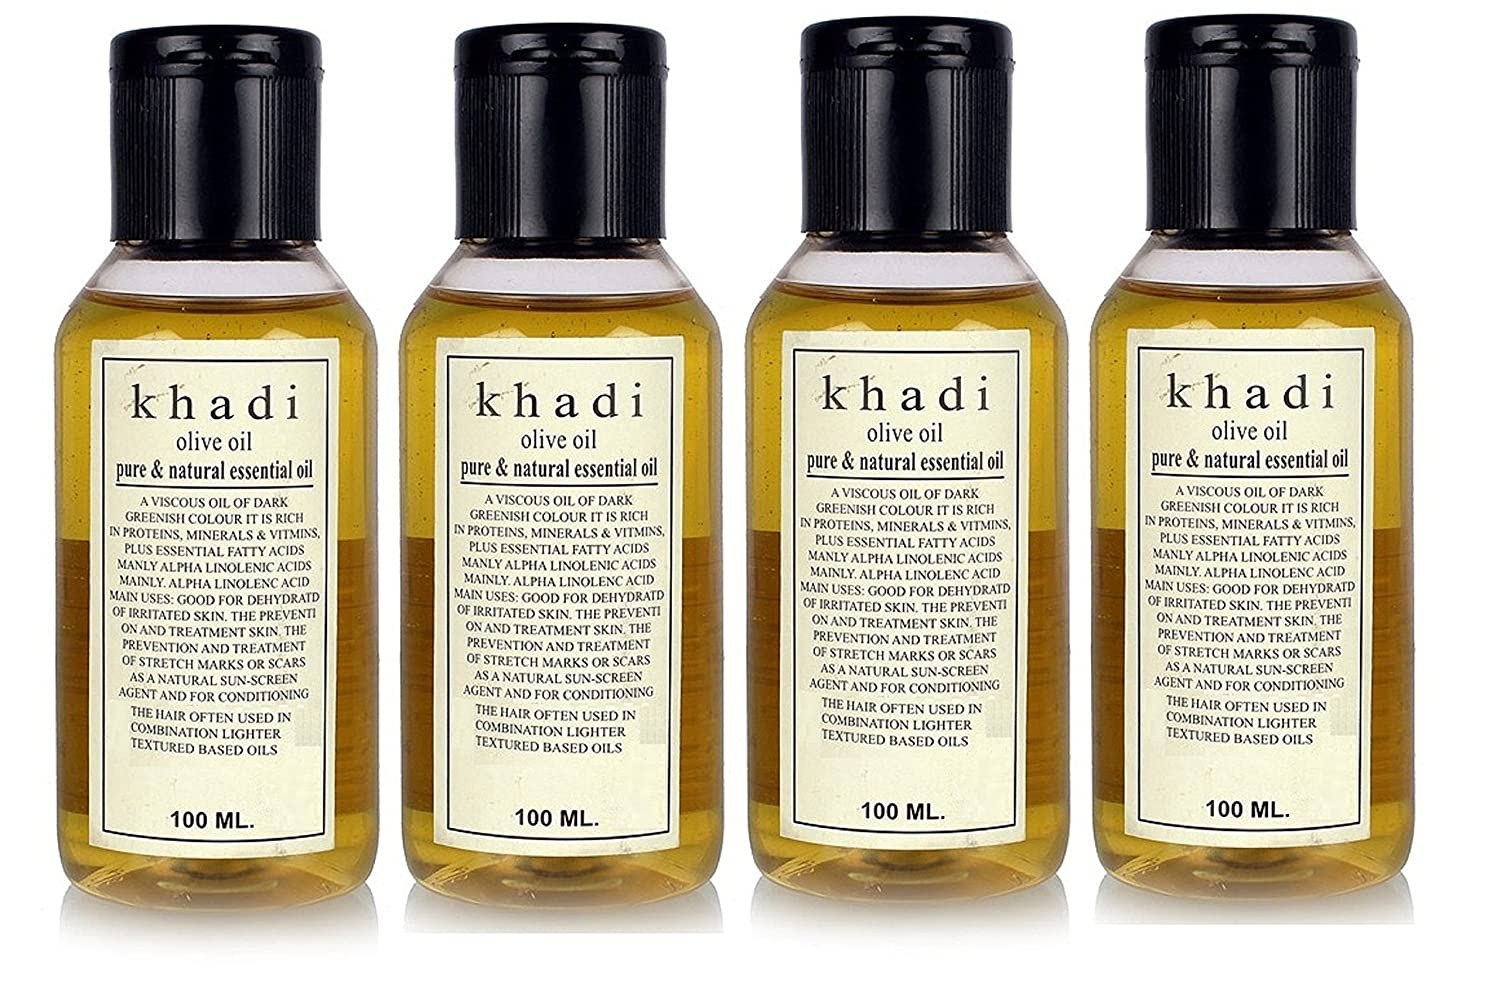 Buy Khadi Olive oil Pure & Natural Essential oil 400ML